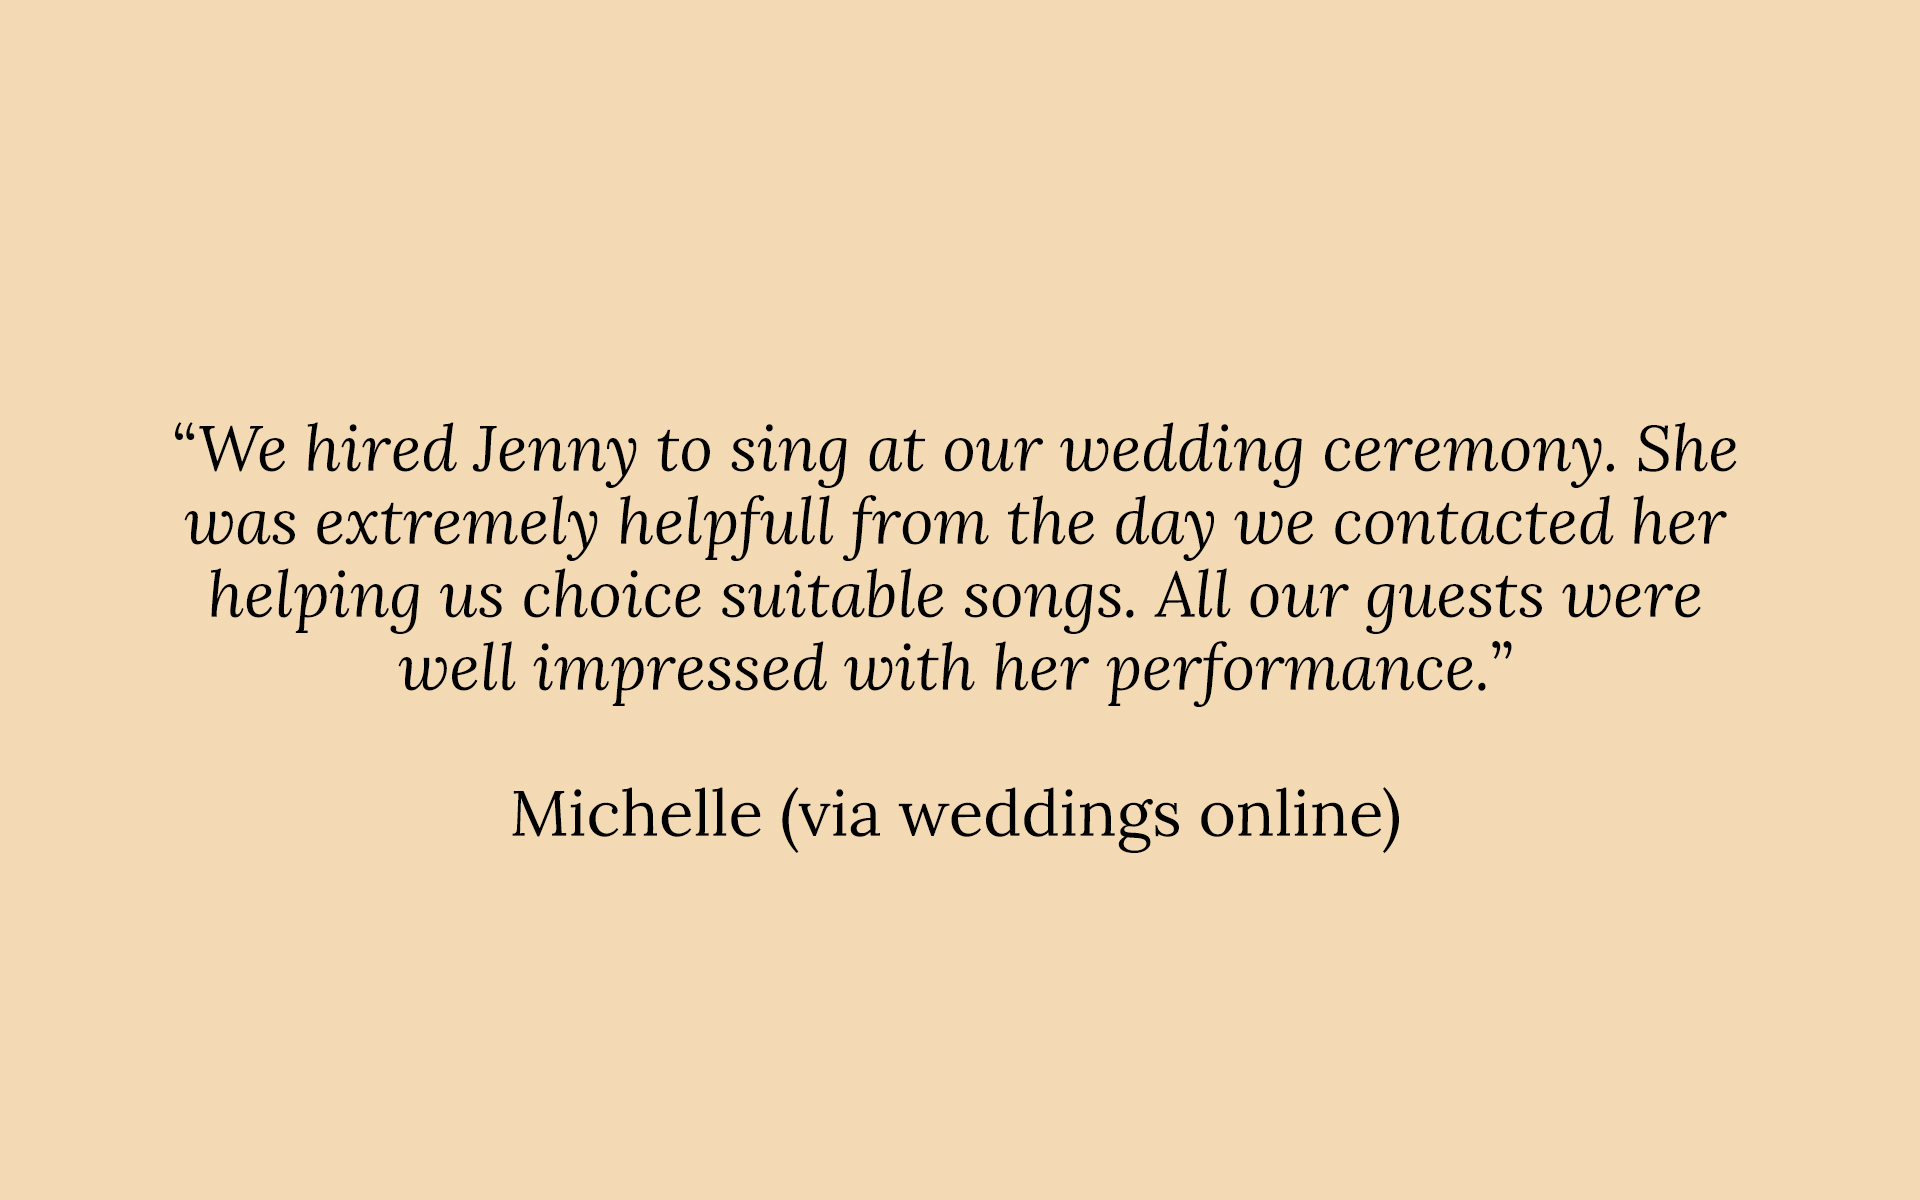 A positive review of Jenny O'Donovan - Wedding Singer